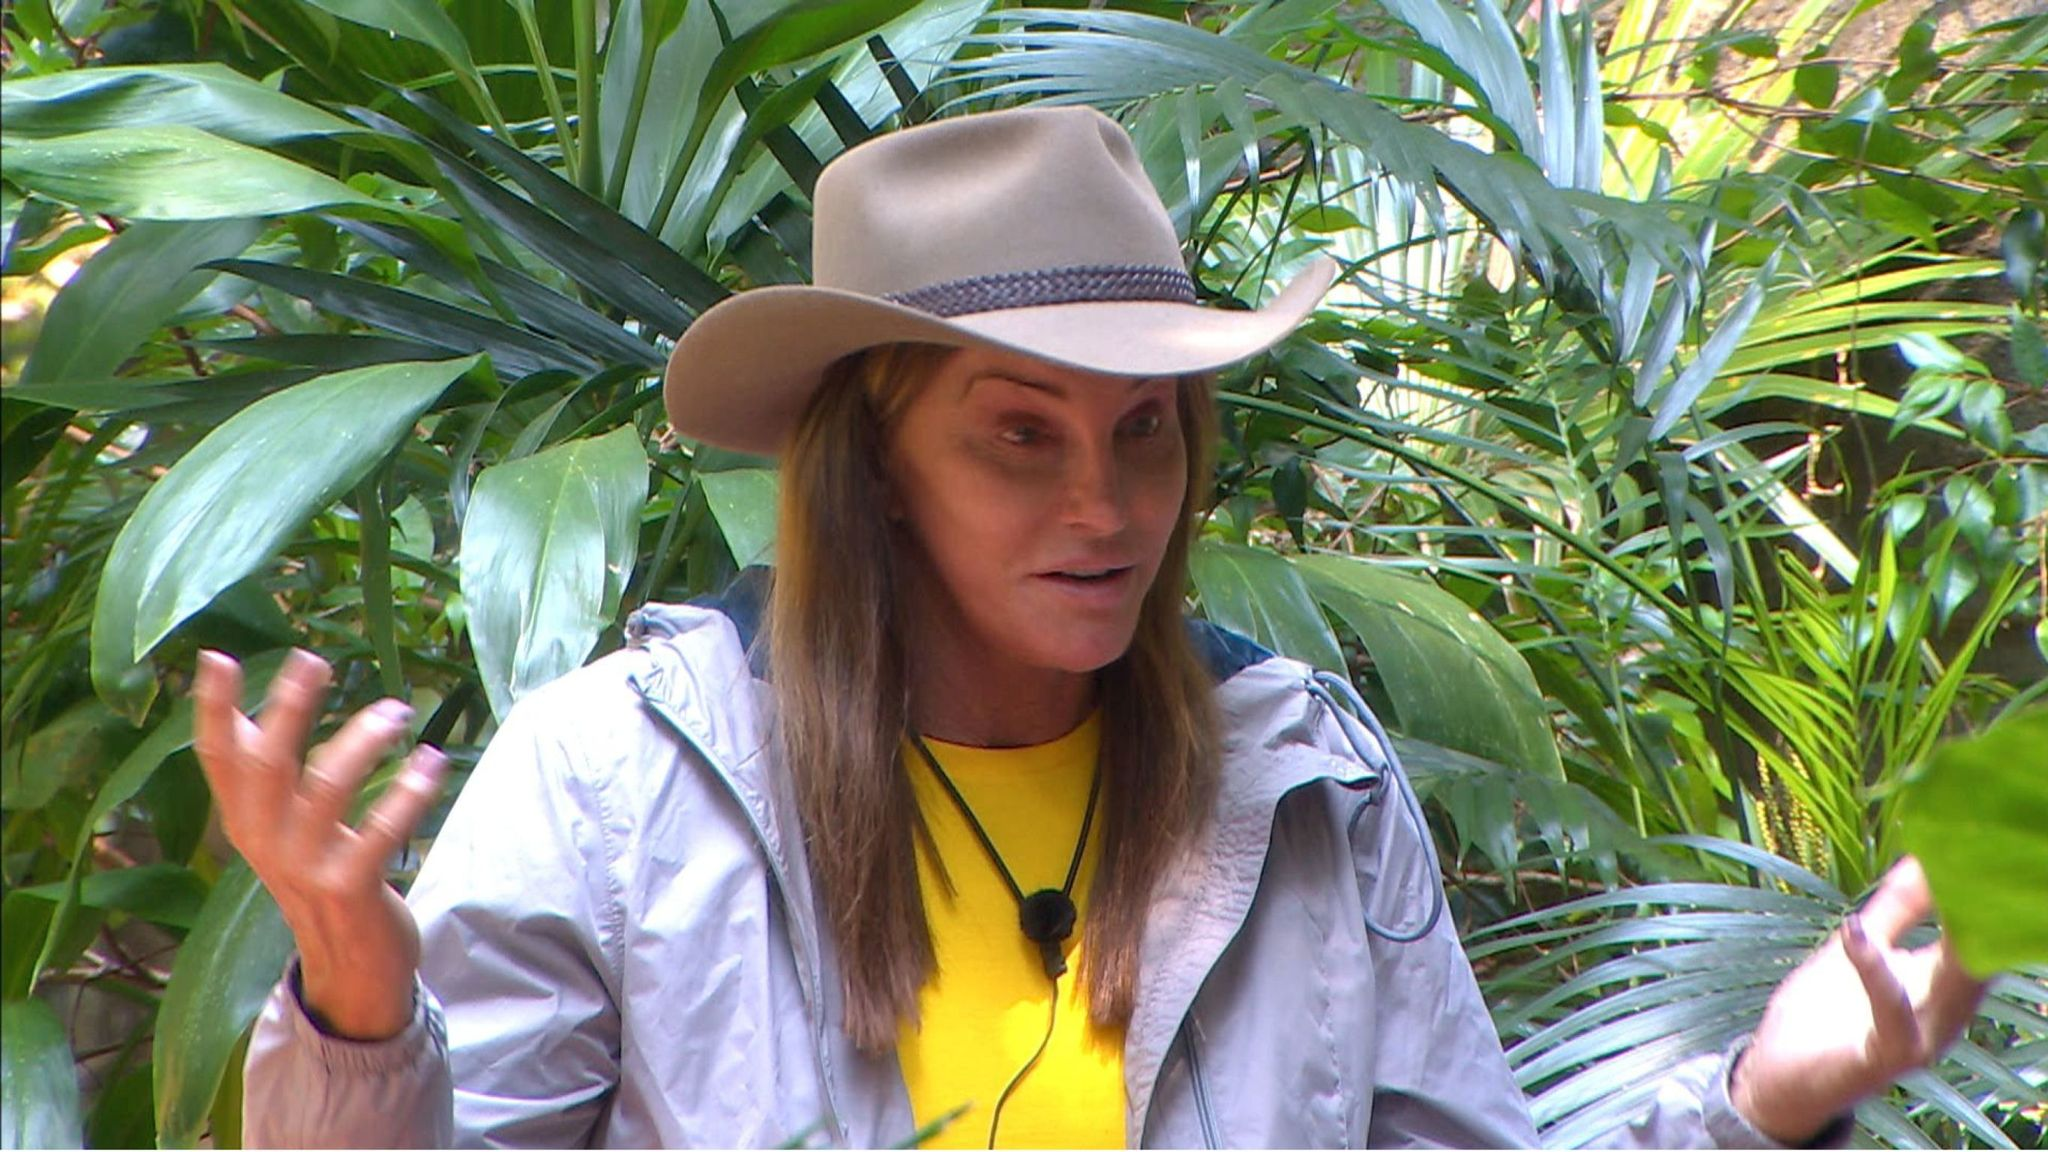 Caitlyn Jenner: I'm A Celebrity star opens up to campmates about coming out as a trans woman